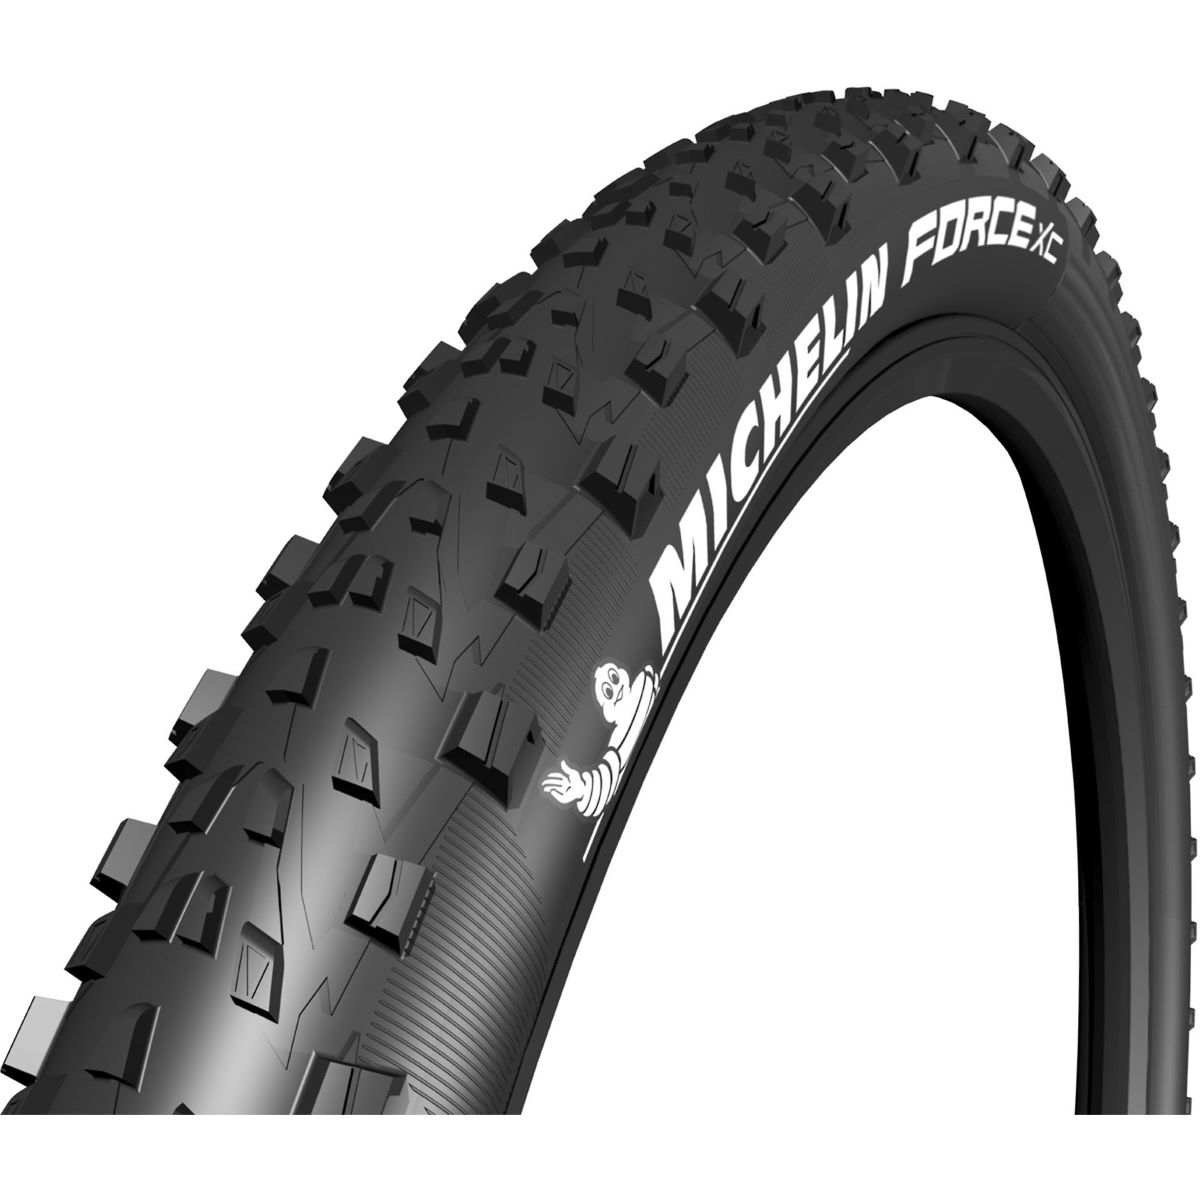 MICHELIN Michelin Force XC Performance TLR MTB Tyre   Tyres